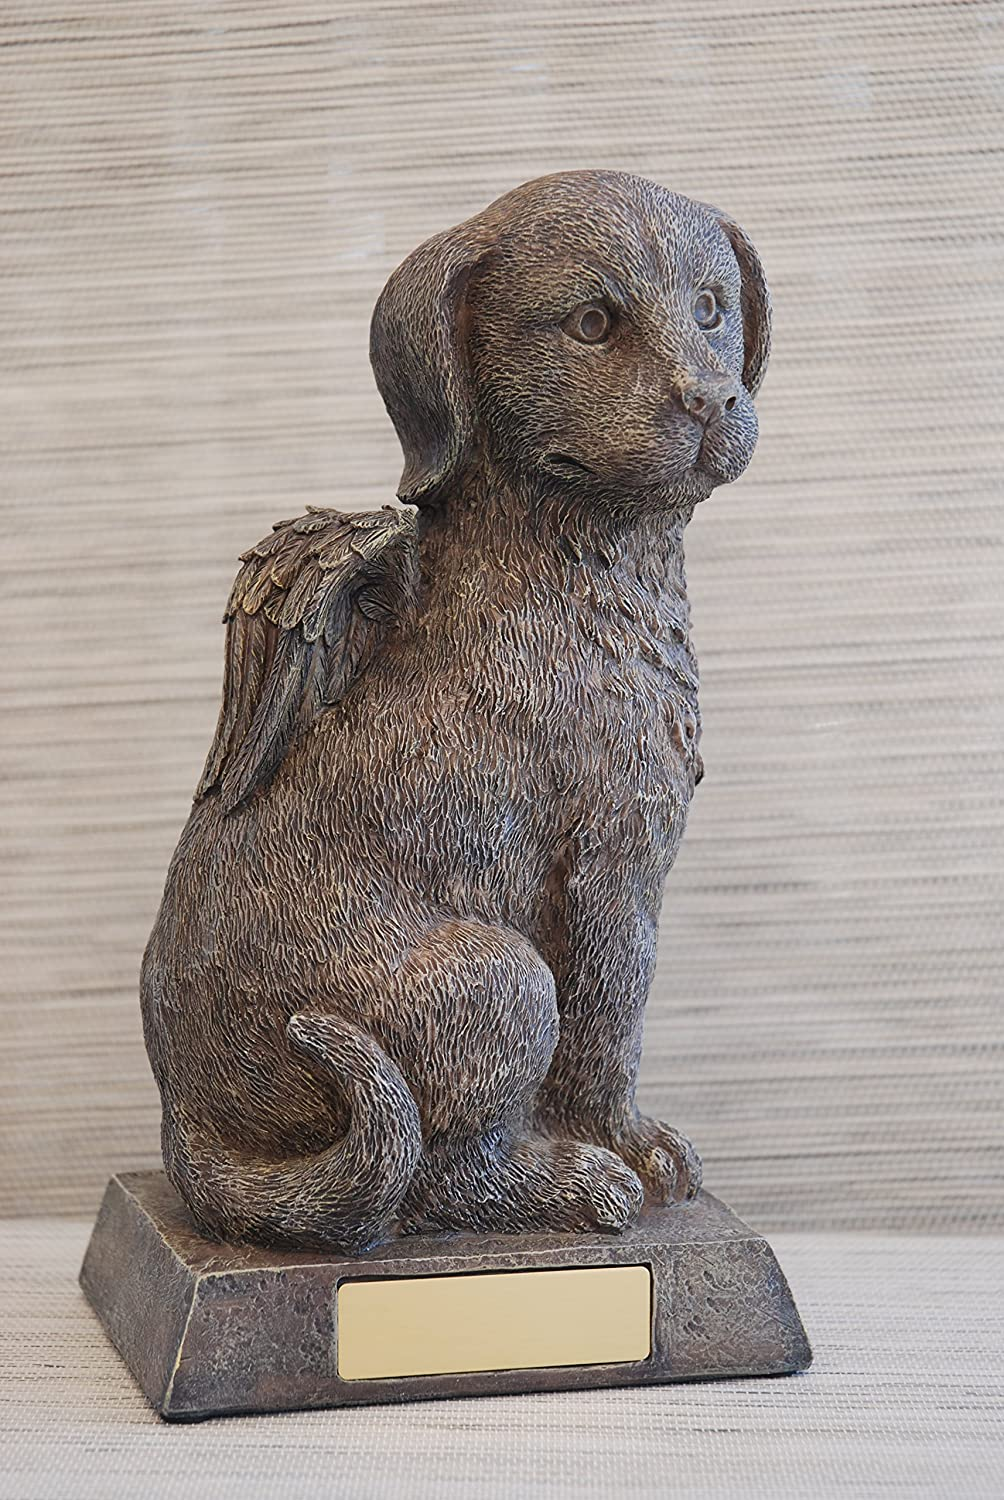 Dog urn grey as DogAngel figurine and engraving sheet, animal urn